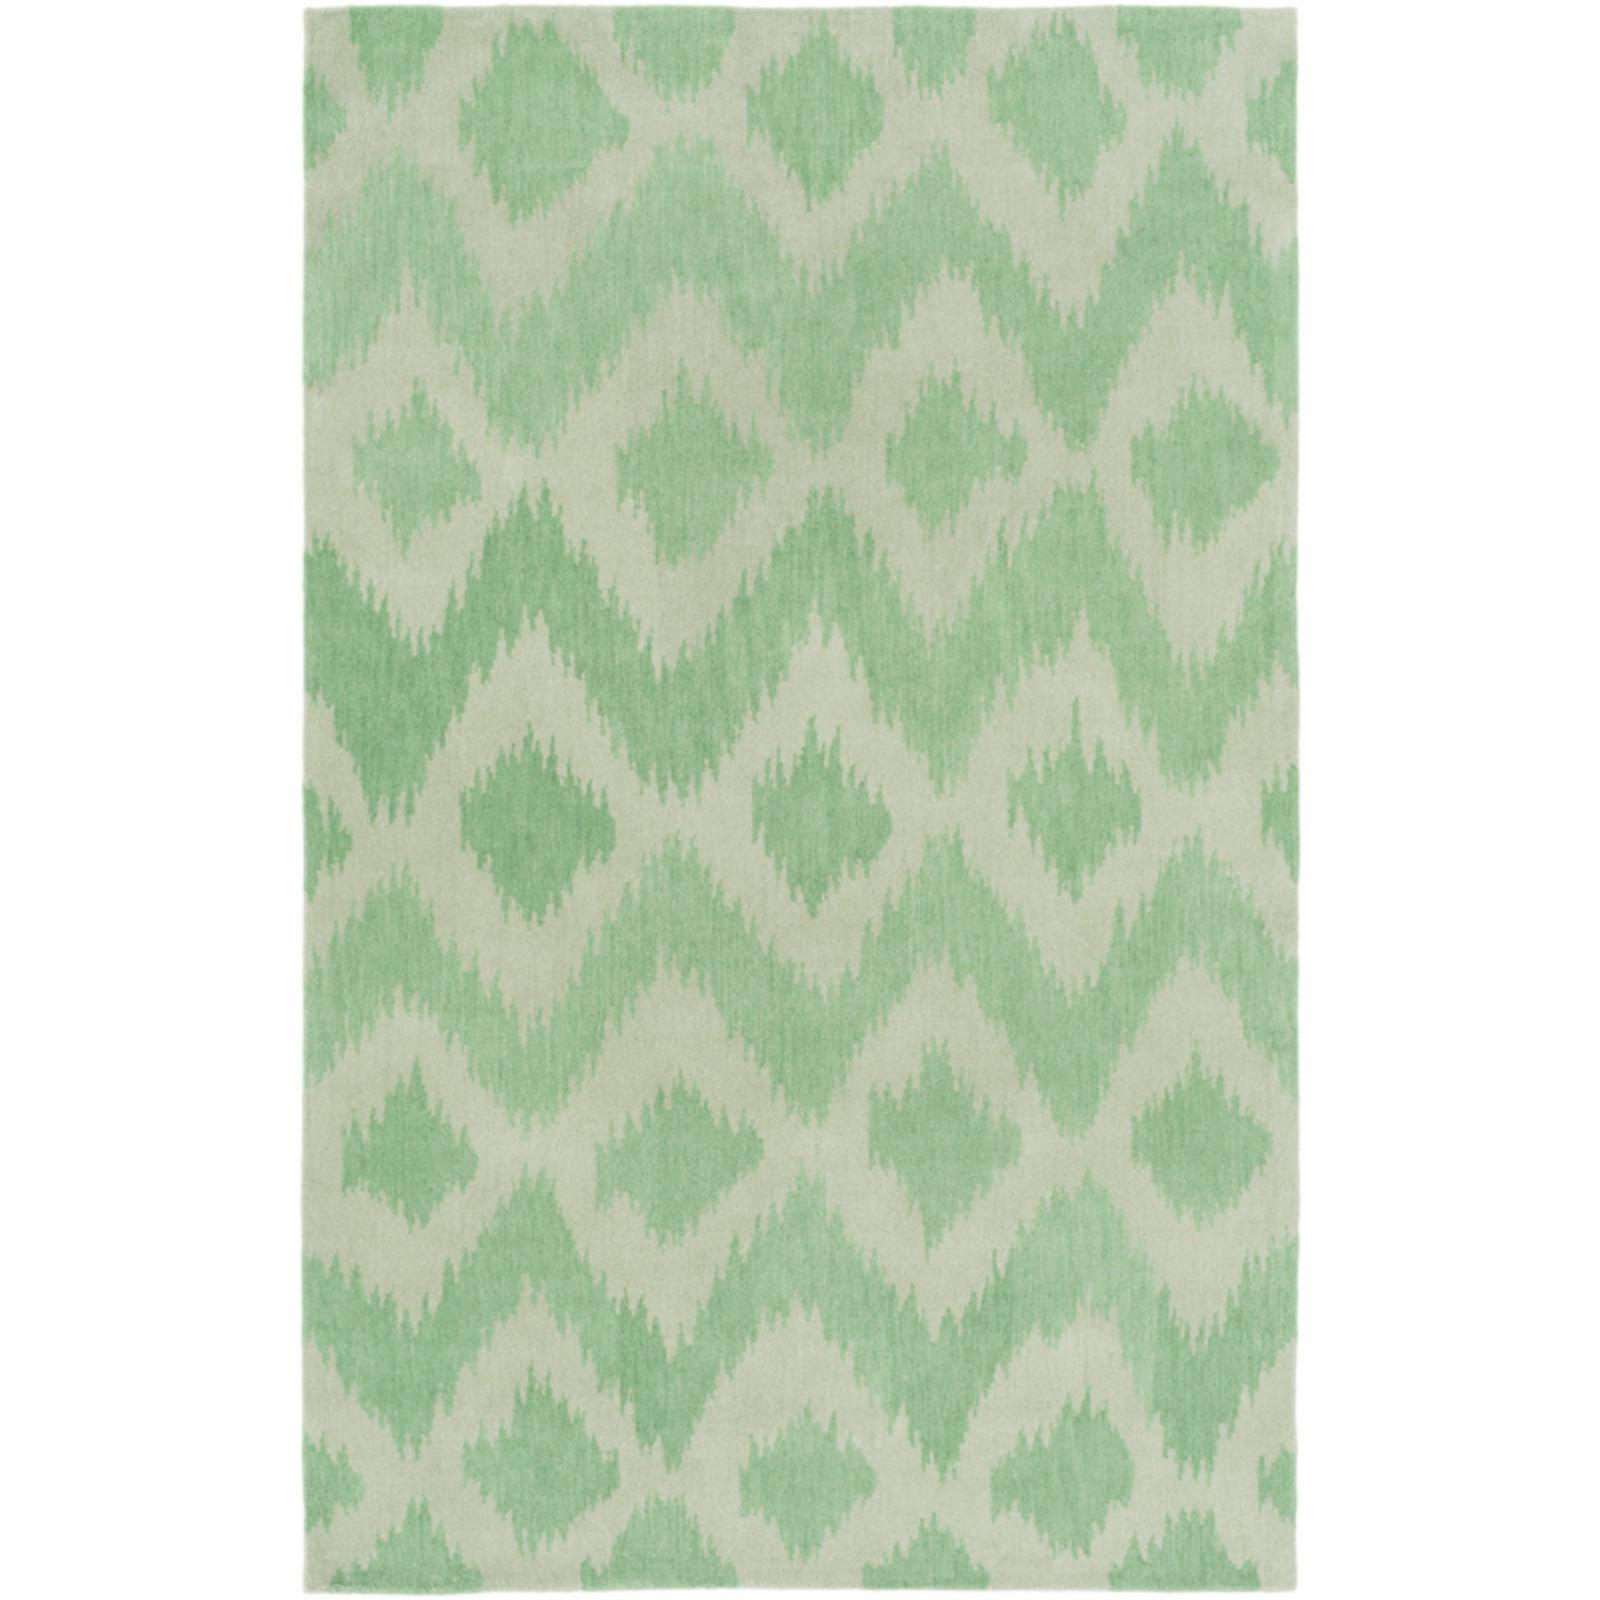 SURYA Leap Frog LPF801 Indoor Area Rug Grass Green - LPF8...